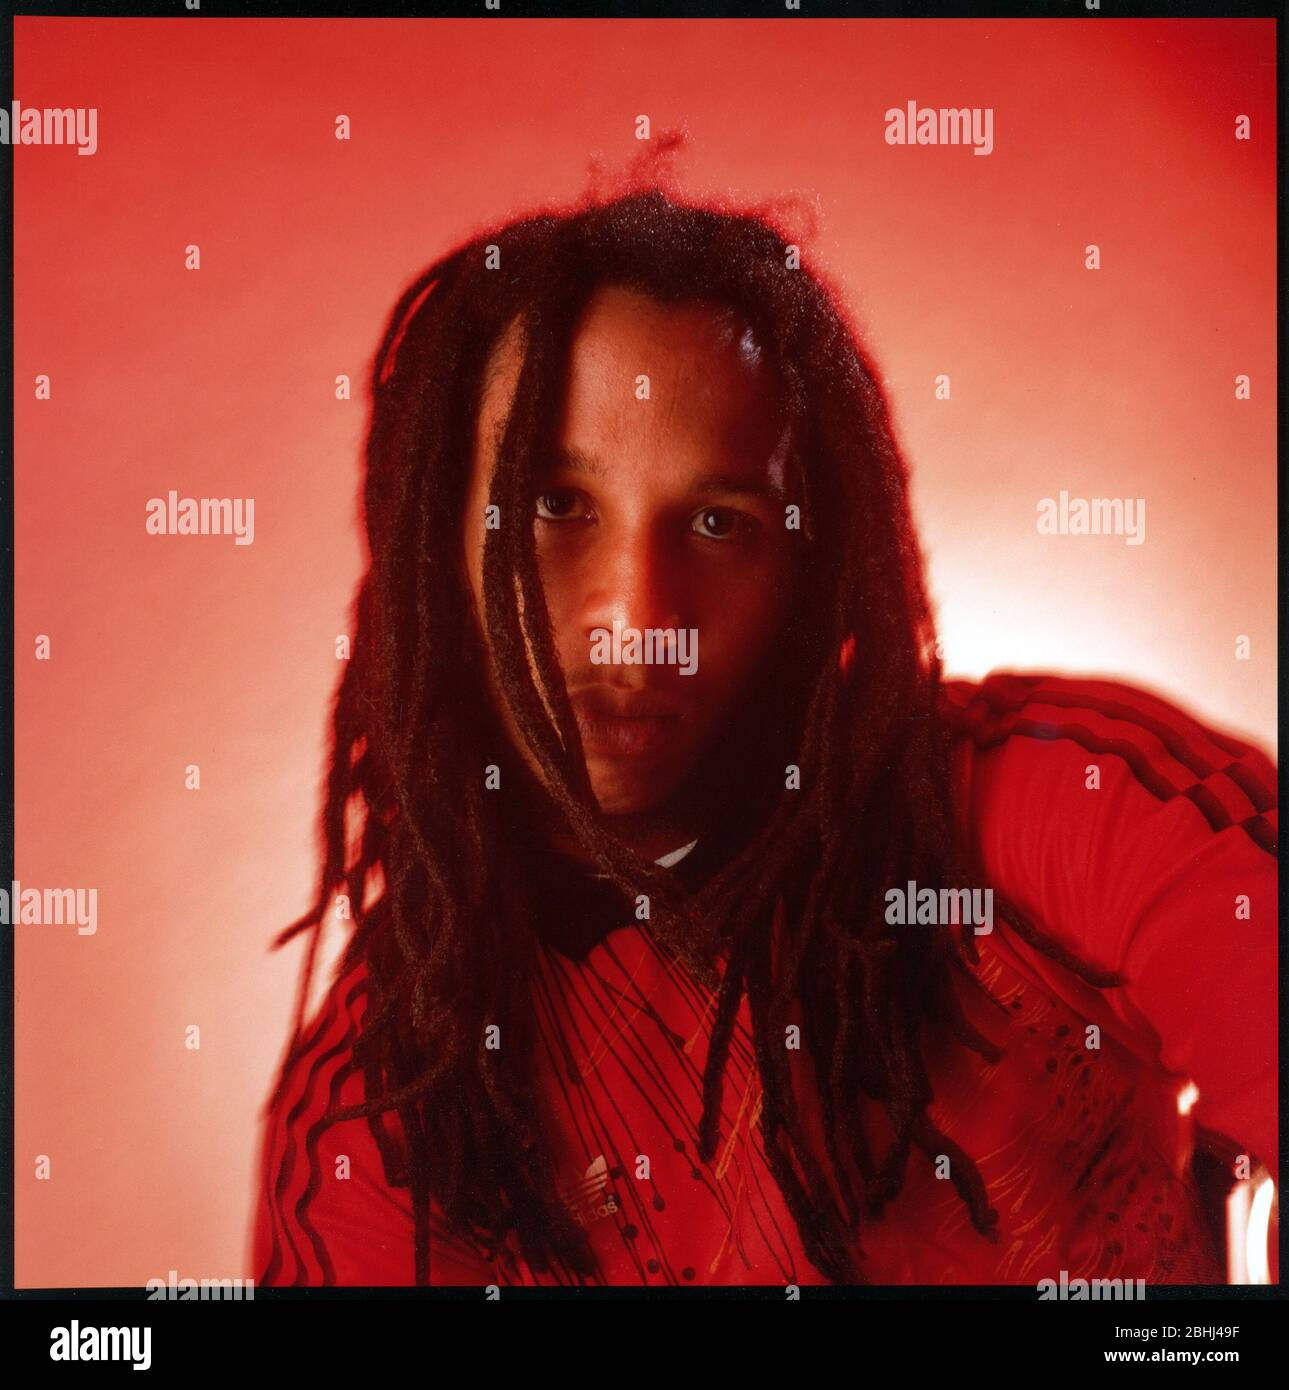 raggae-musician-ziggy-marley-son-of-bob-marley-early-1990s-studio-portrait-2BHJ49F.jpg